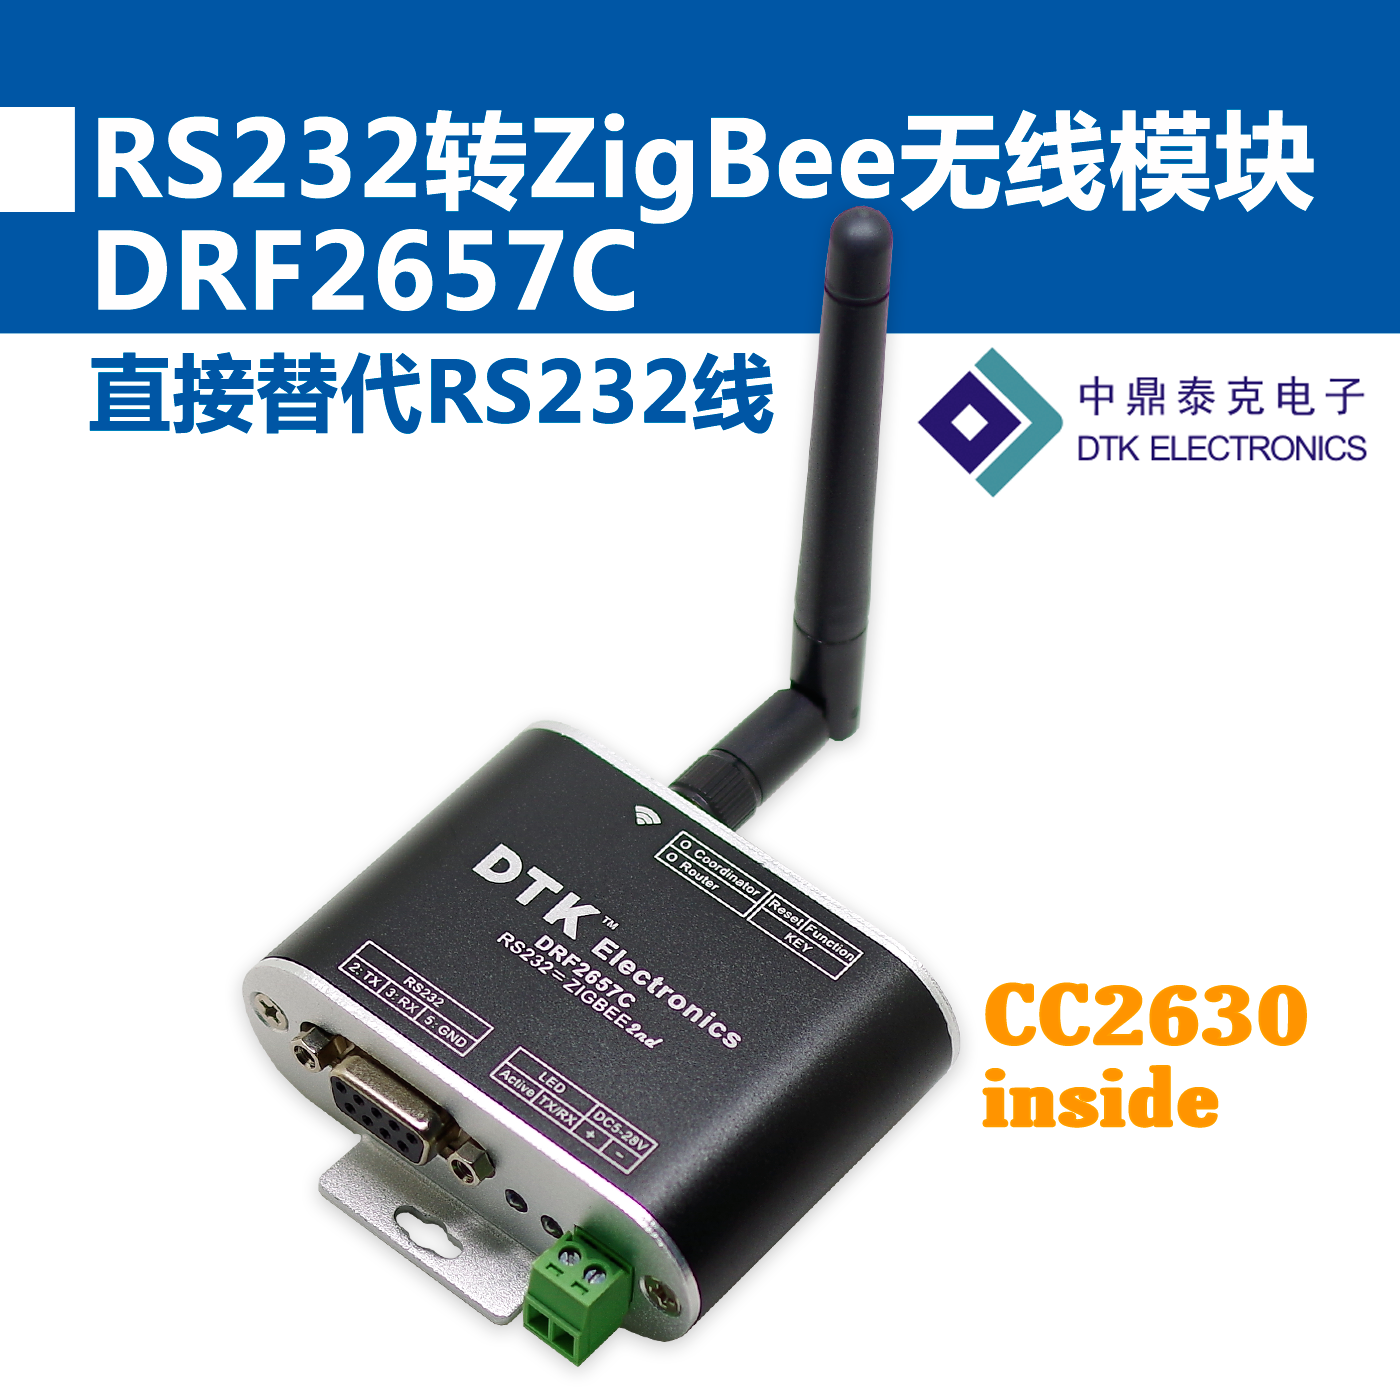 RS232 Switch to ZigBee Wireless Module (1.6 Km Transmission, CC2630 Chip, Far Beyond CC2530) usb serial rs485 rs232 zigbee cc2530 pa remote wireless module